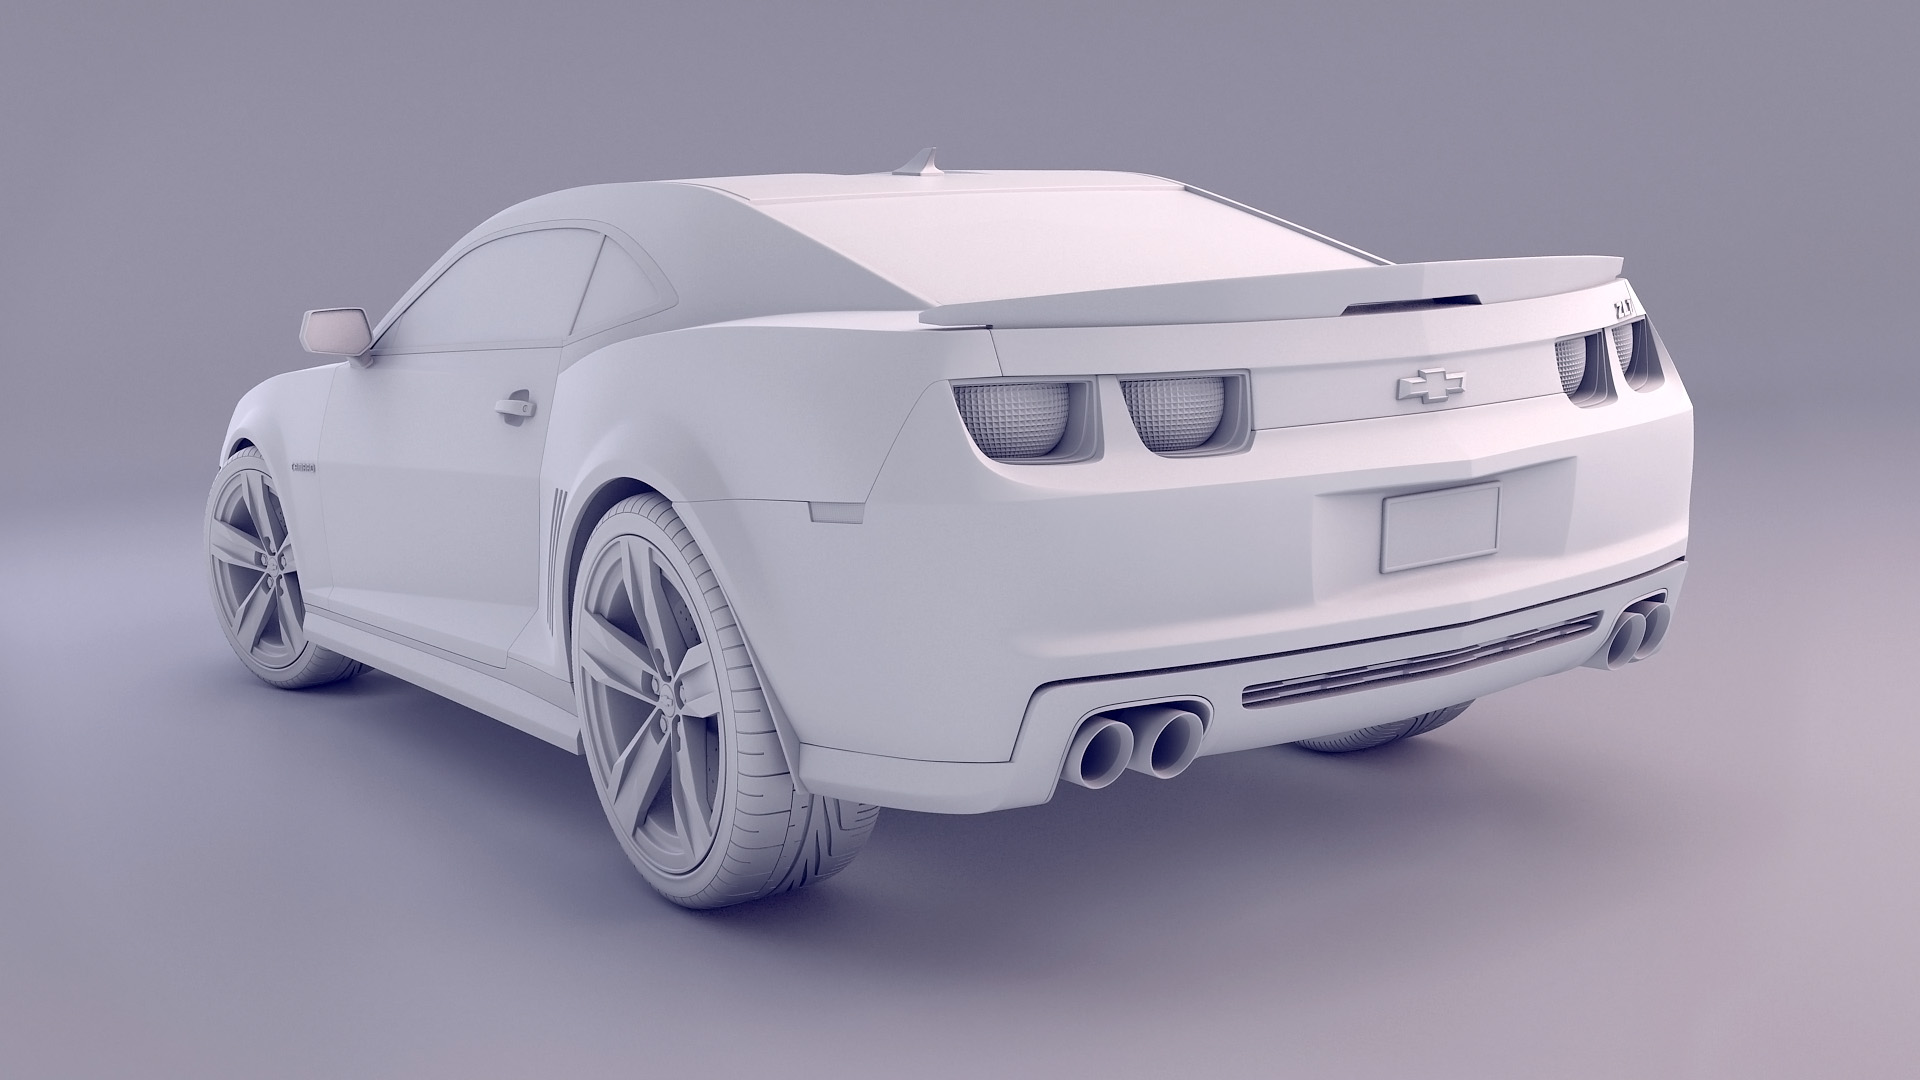 Blender - Camaro white